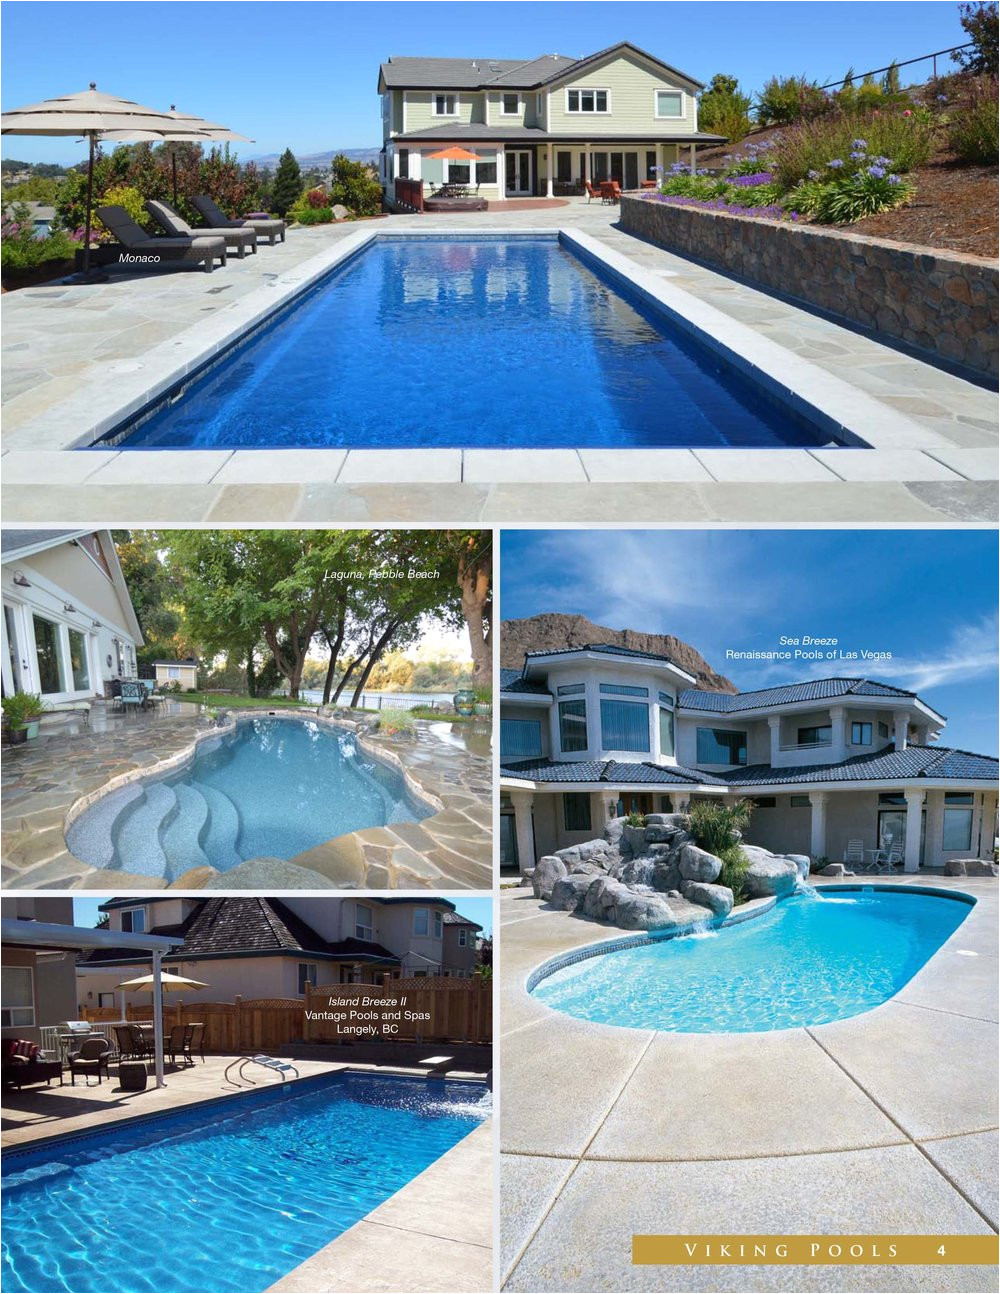 Solar Pool Heating Repair Las Vegas Viking Pools and Spas Gary S Pool and Patio